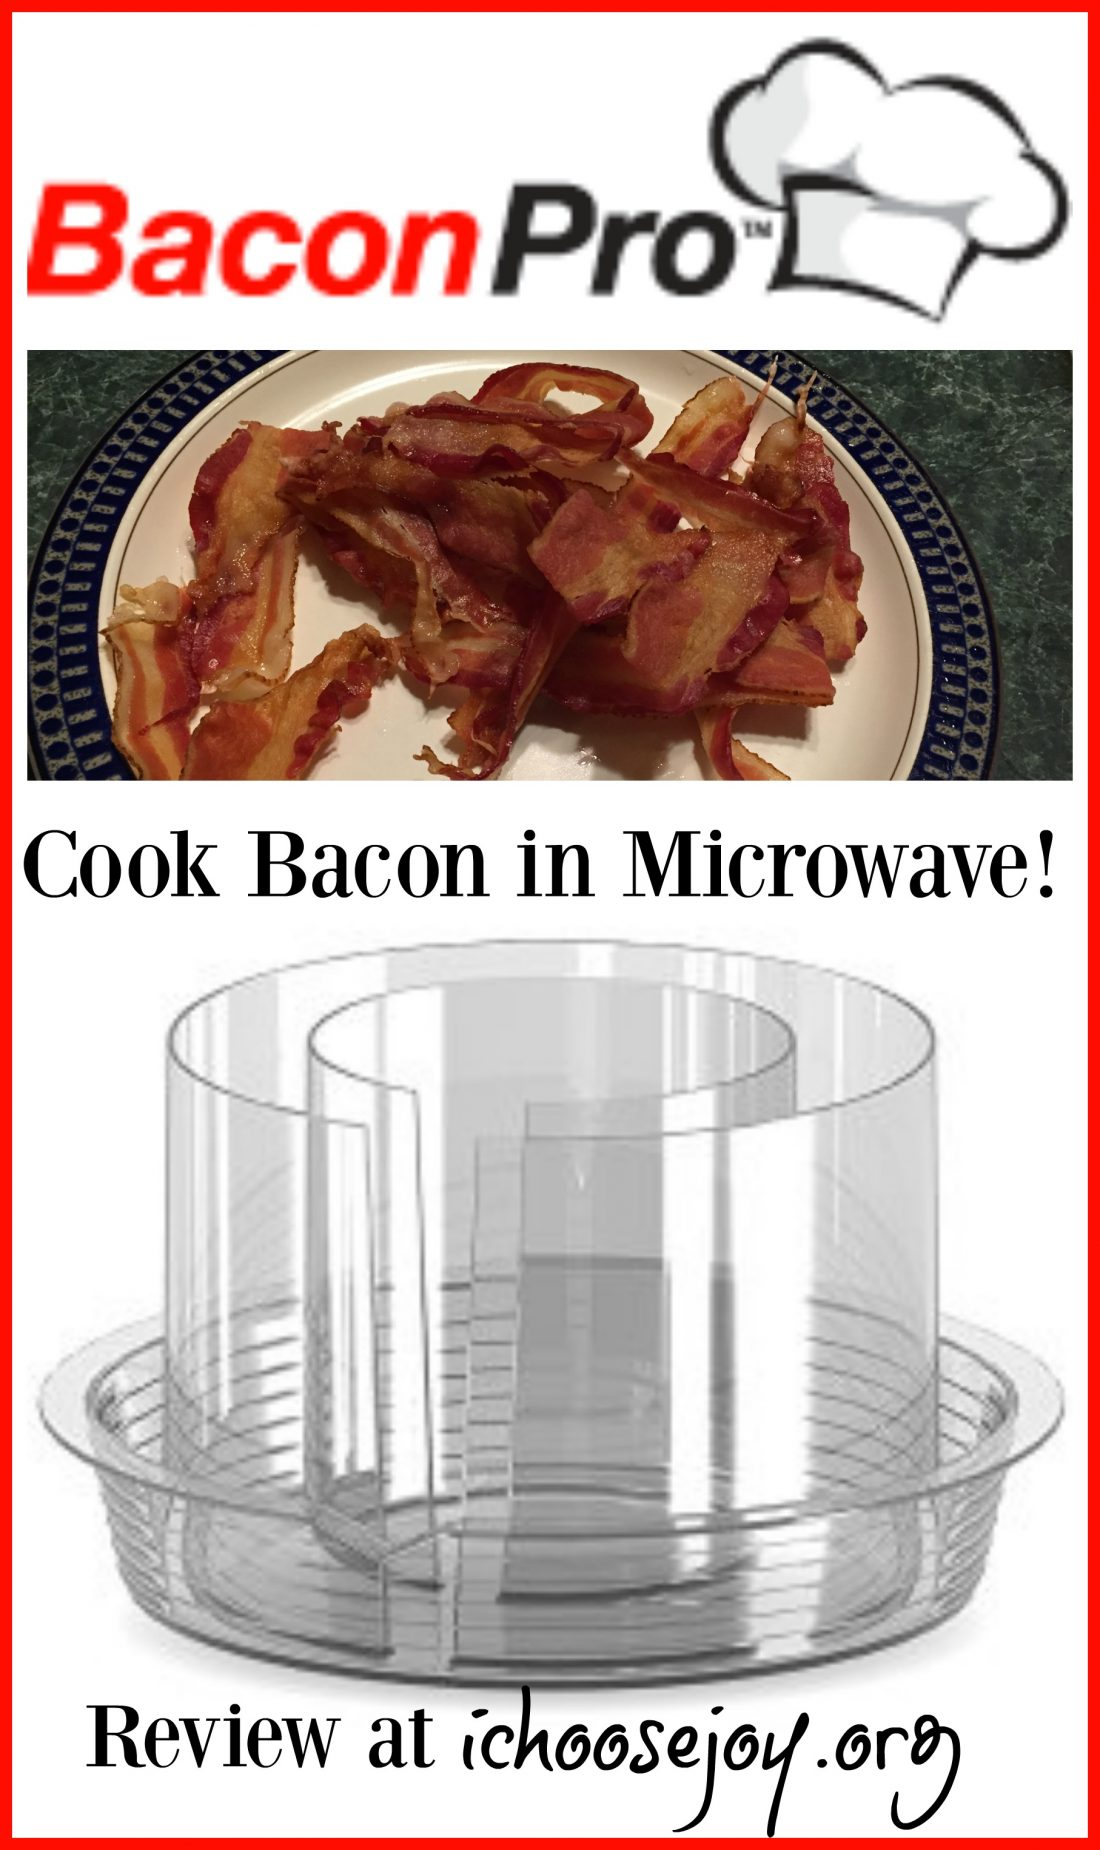 We Love It For Sunday Morning Breakfast And Blt Sandwiches In The Summer  With Our Homegrown How To Cook Crispy Bacon In The Microwave